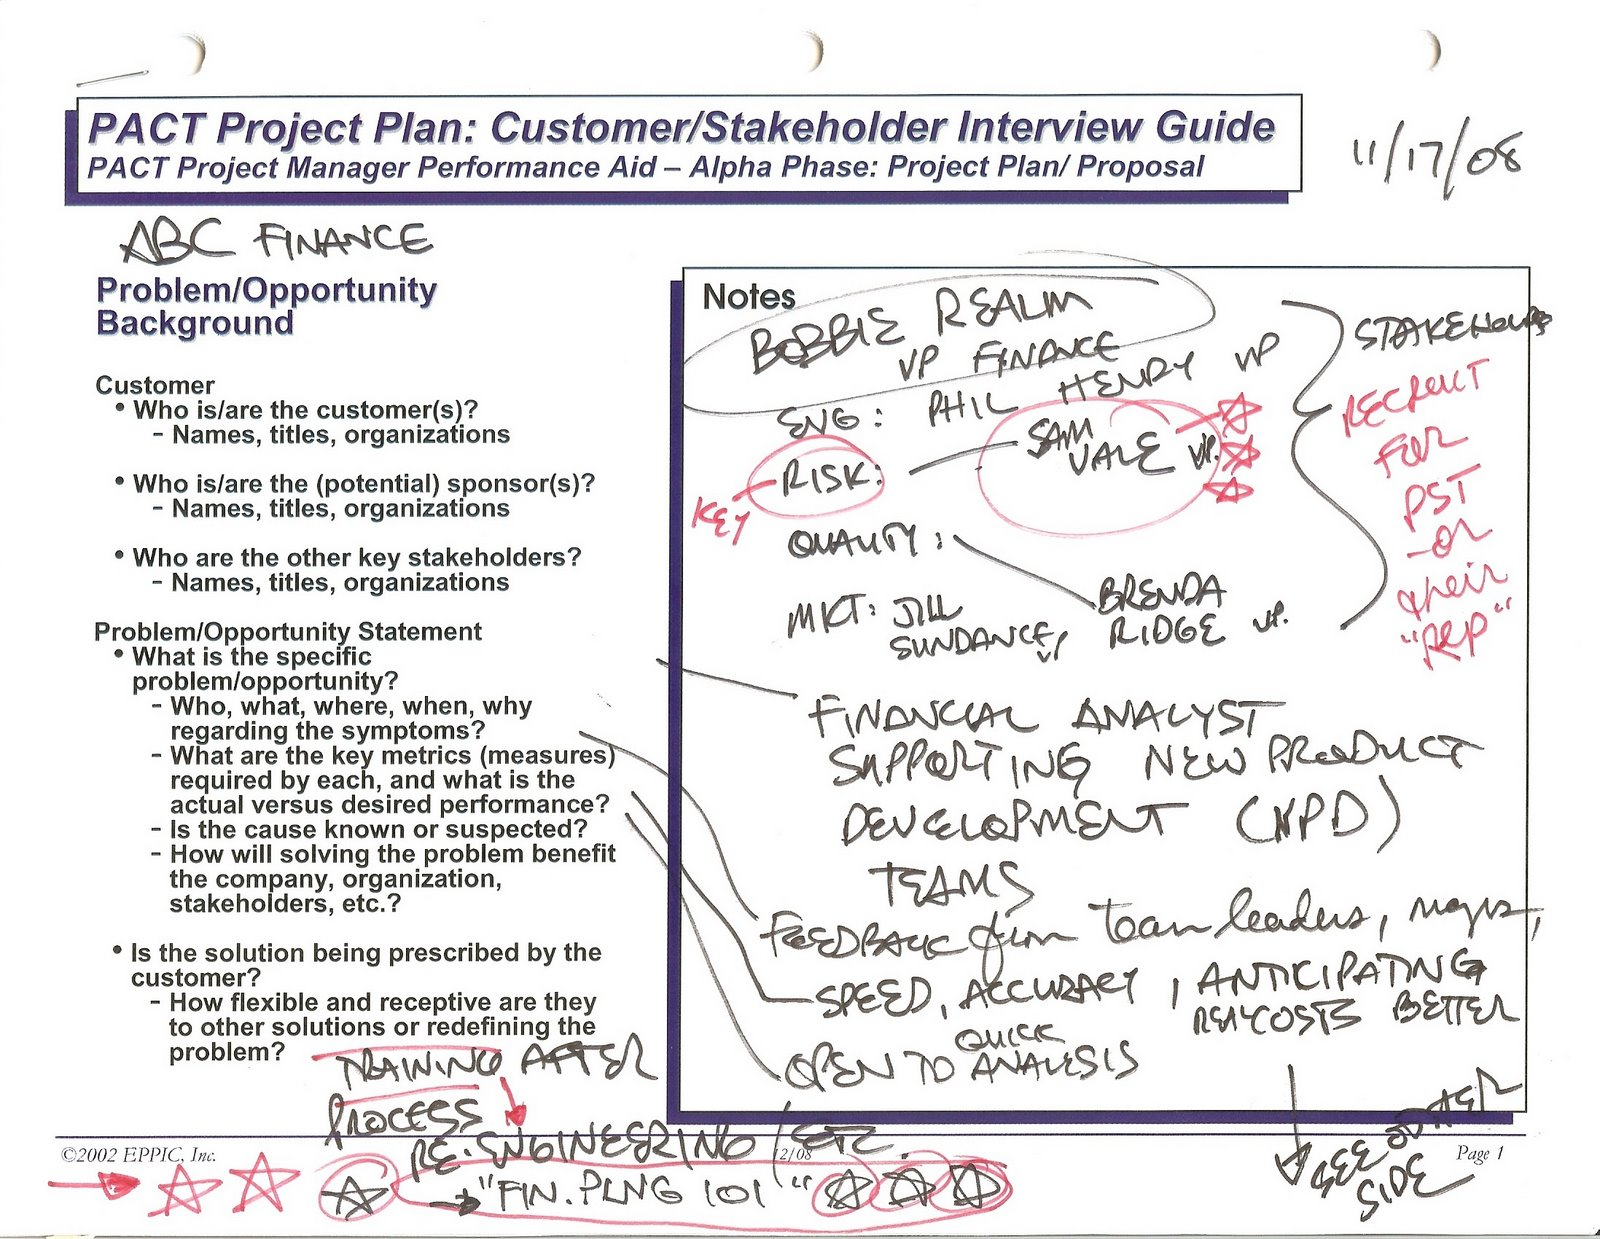 growthink s ultimate business plan template - the cad project plan template and link to the pact